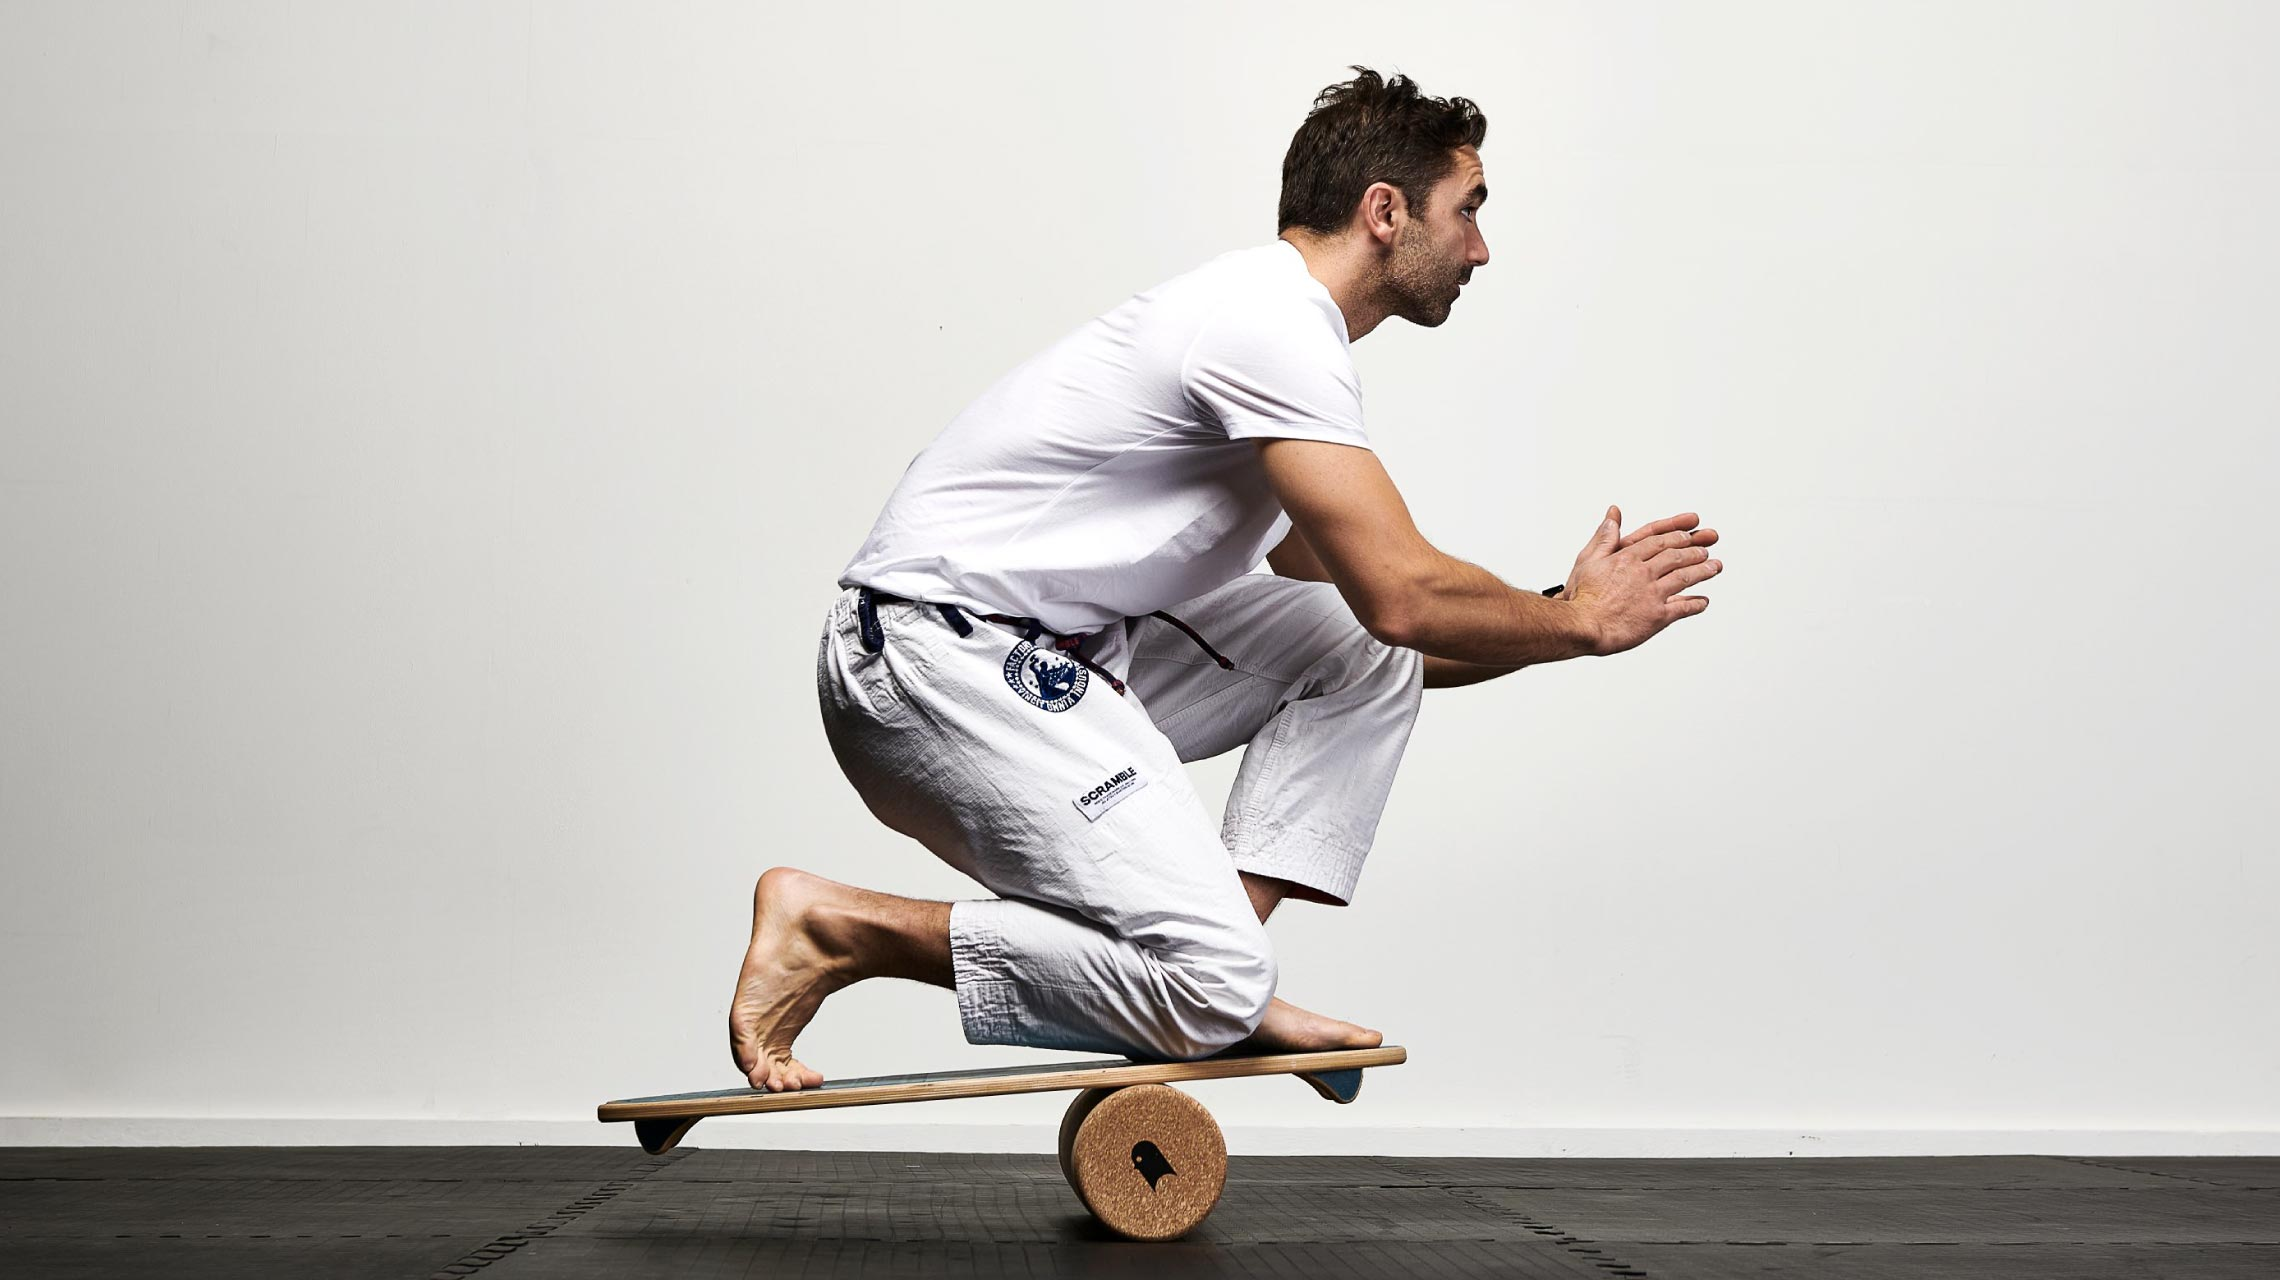 Swifty Balance Board - VARIABLE FITNESS FOR ALL LEVELS